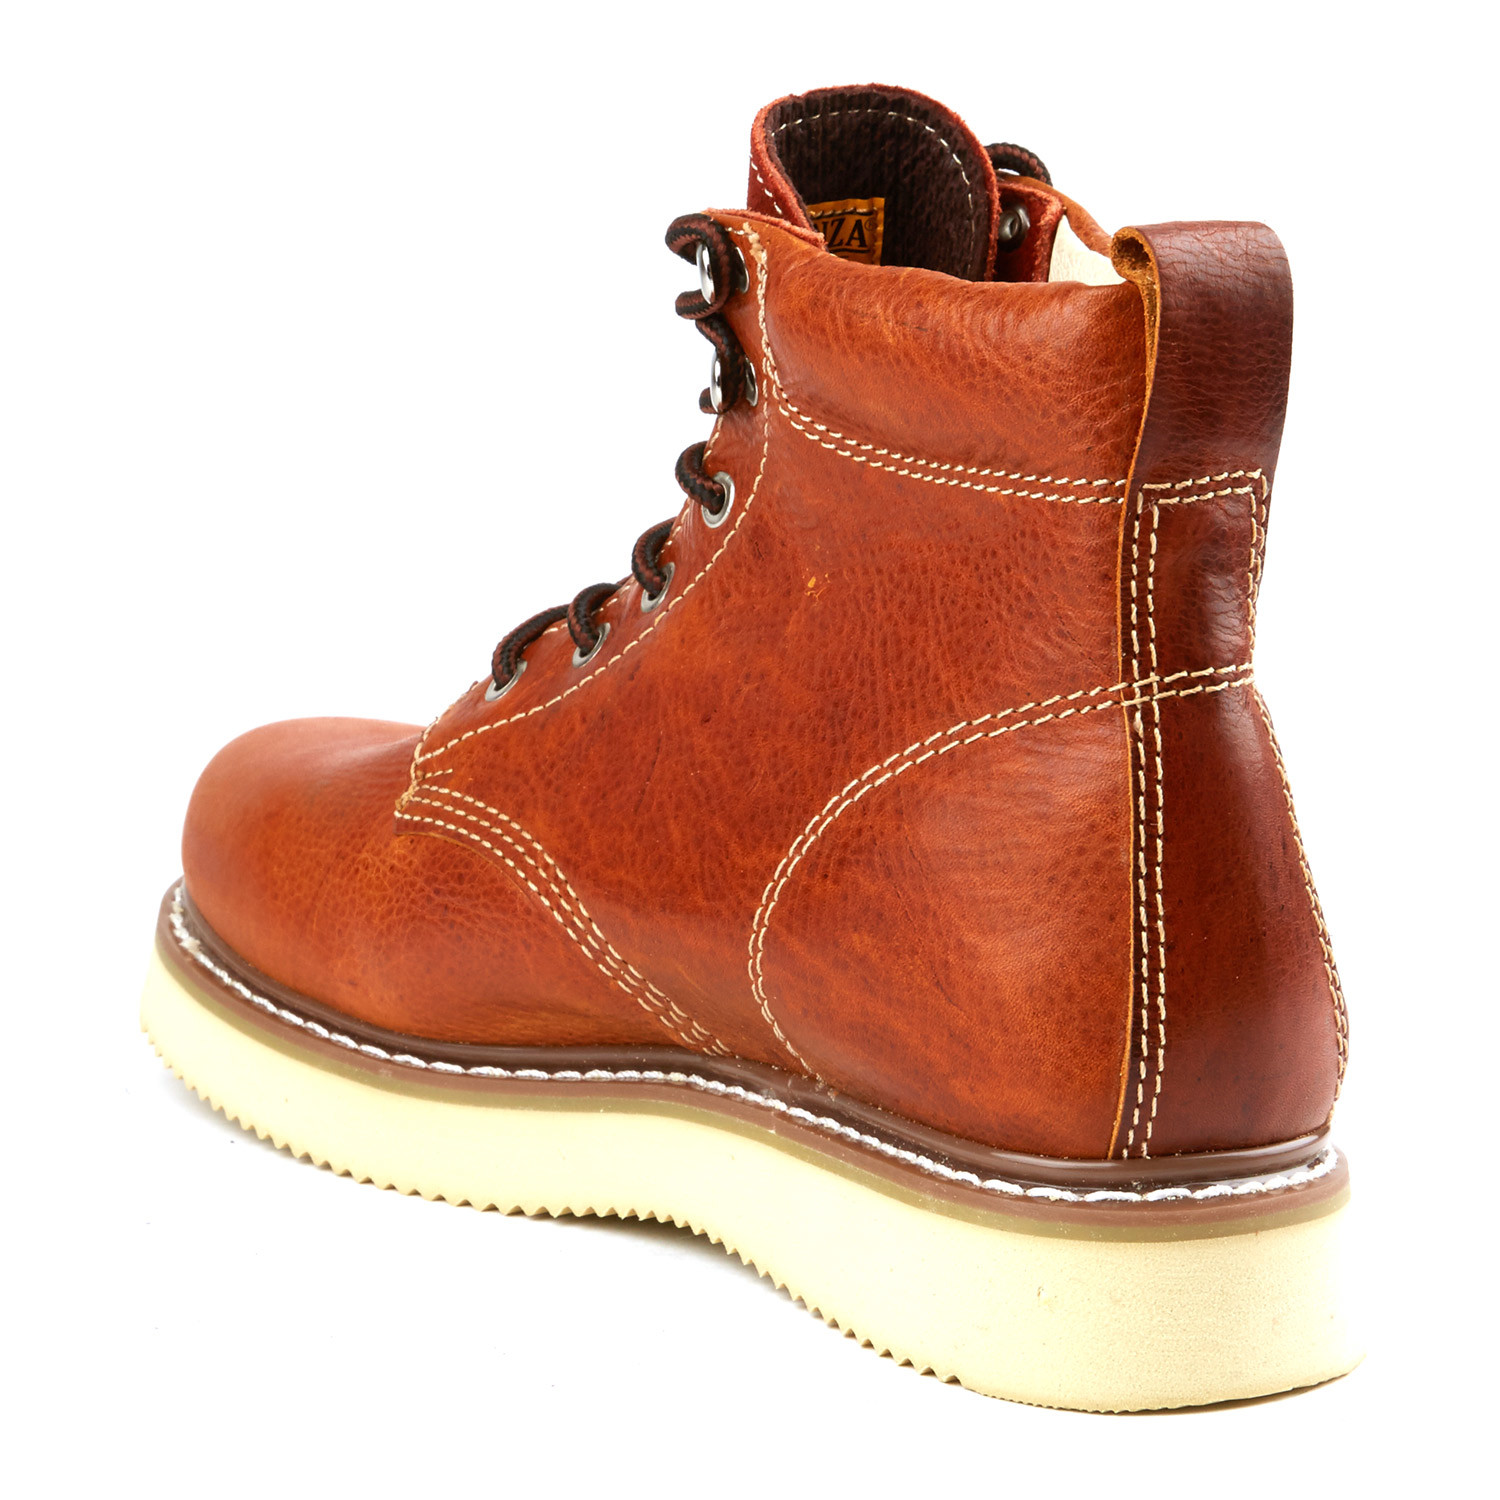 6 classic wedge boot light brown us 8